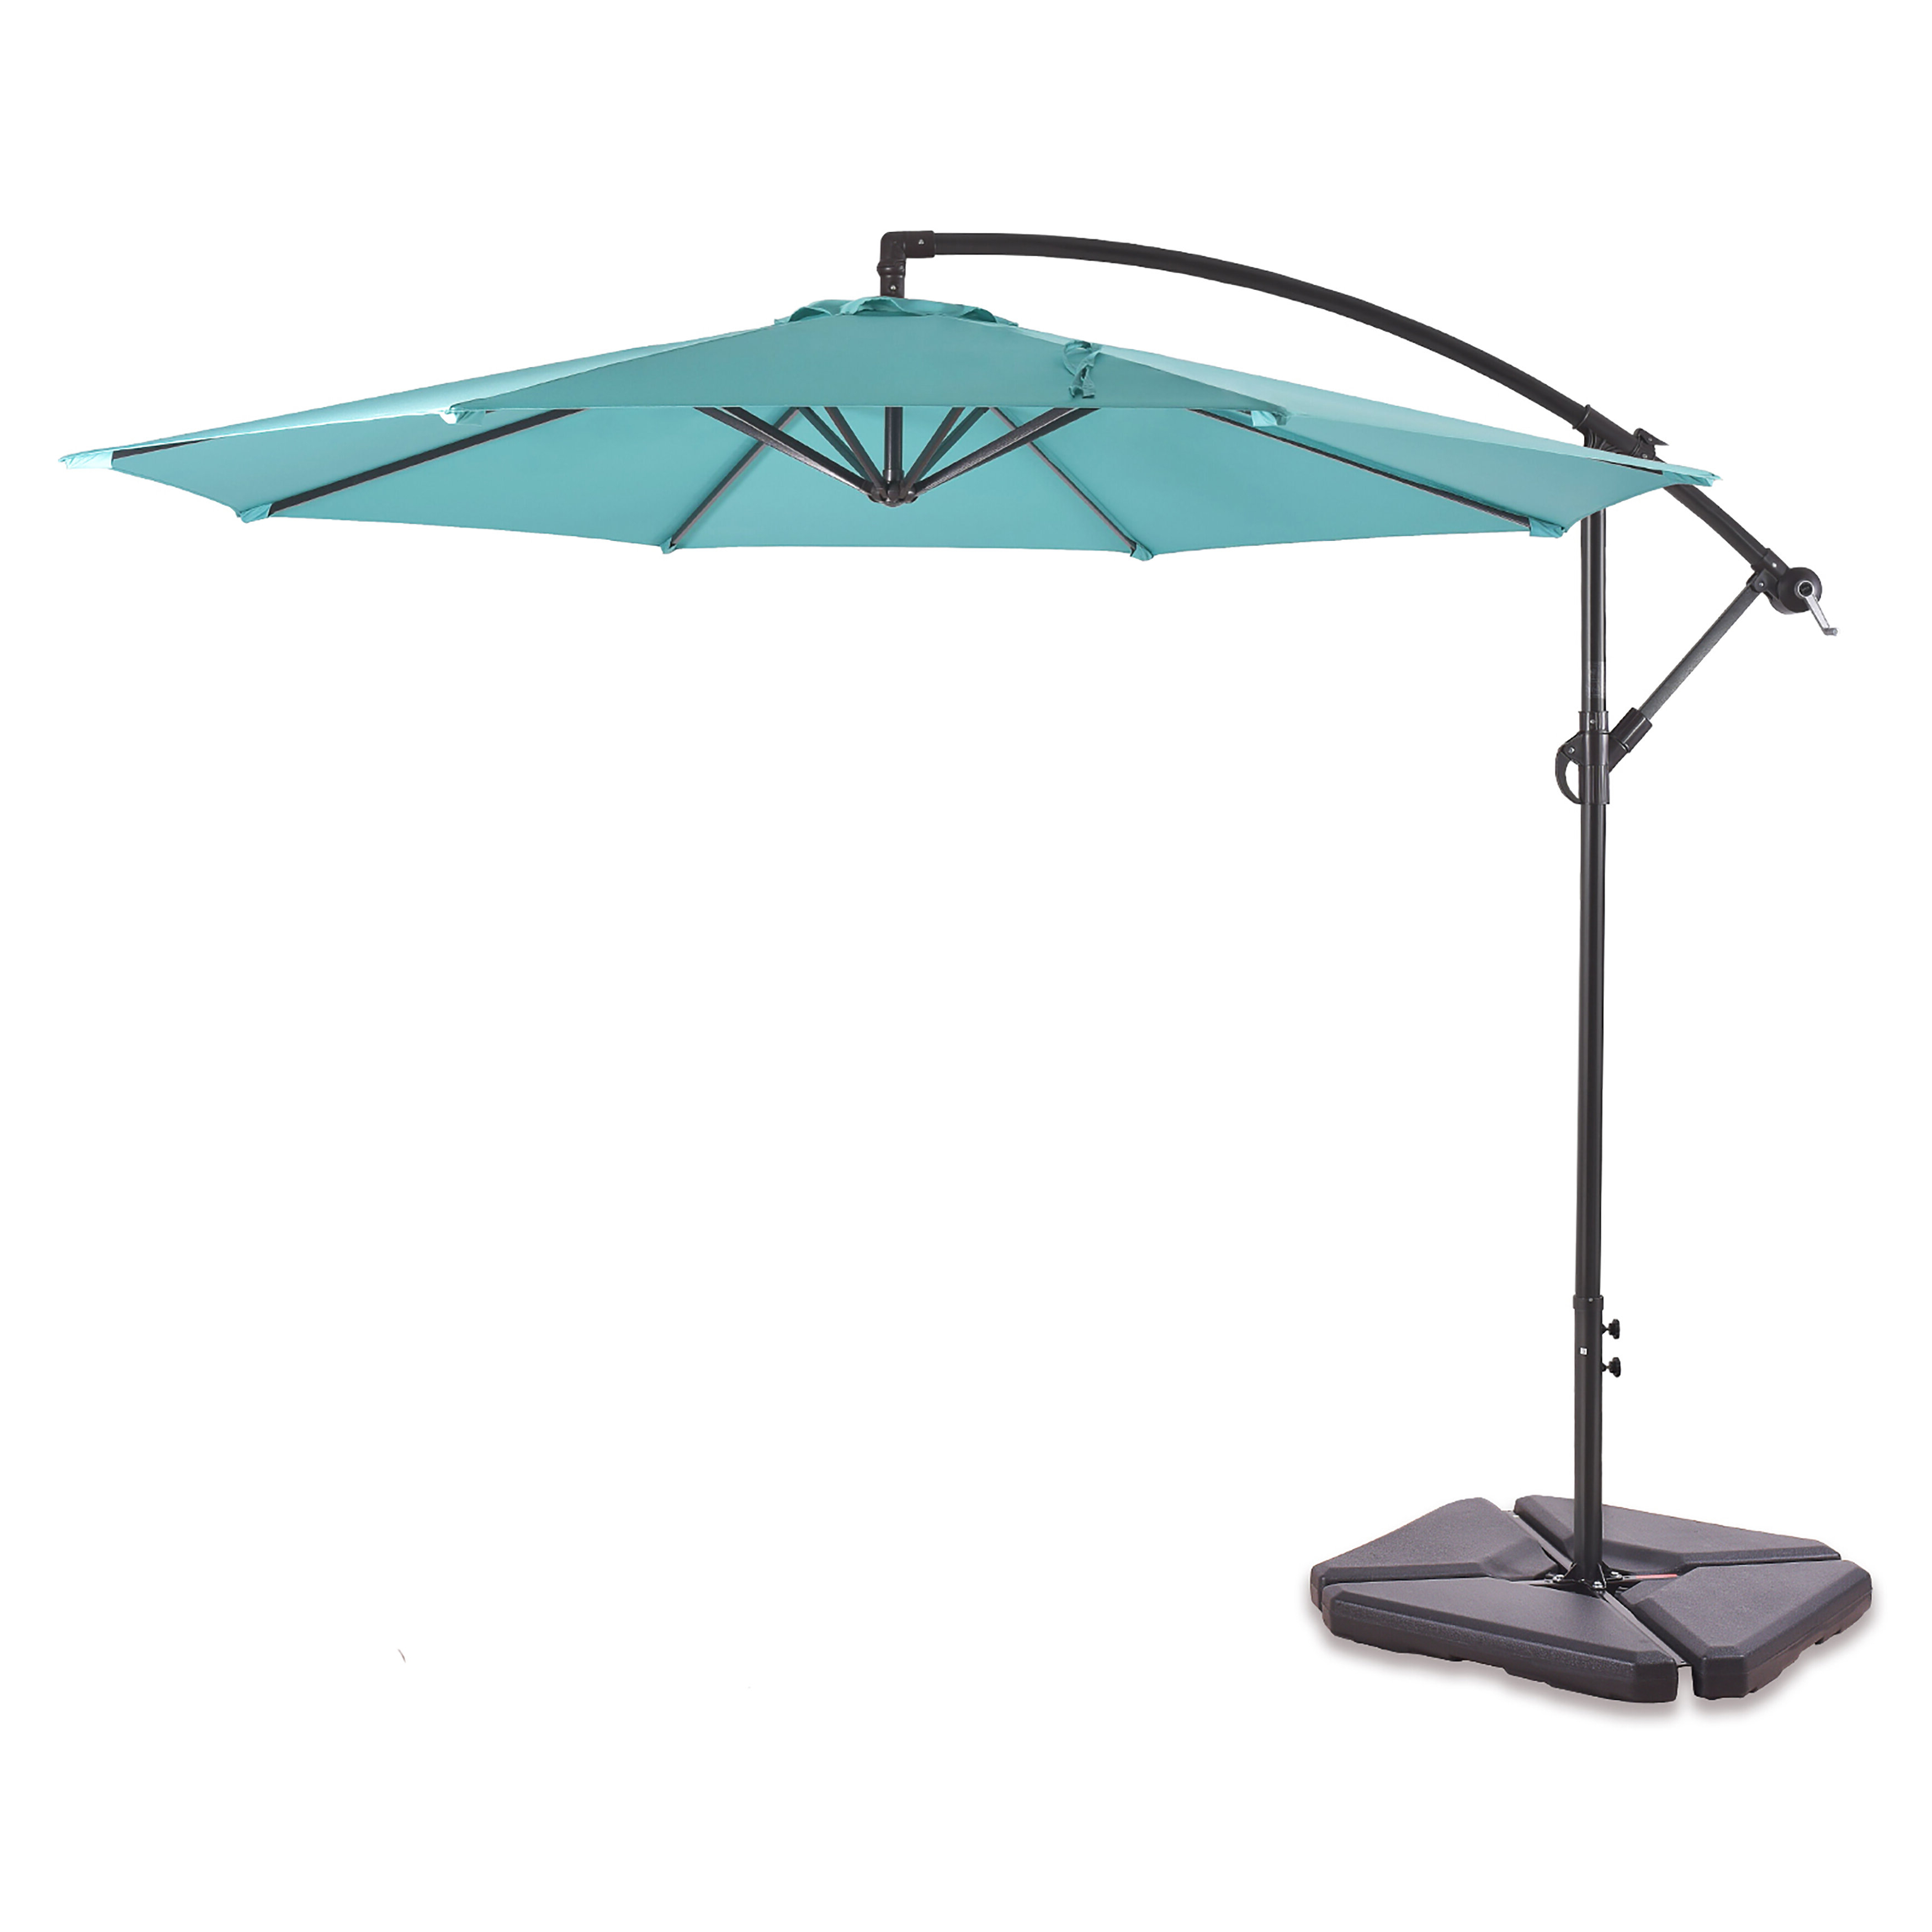 Karr 10' Cantilever Umbrella For Most Up To Date Anna Cantilever Umbrellas (View 10 of 20)